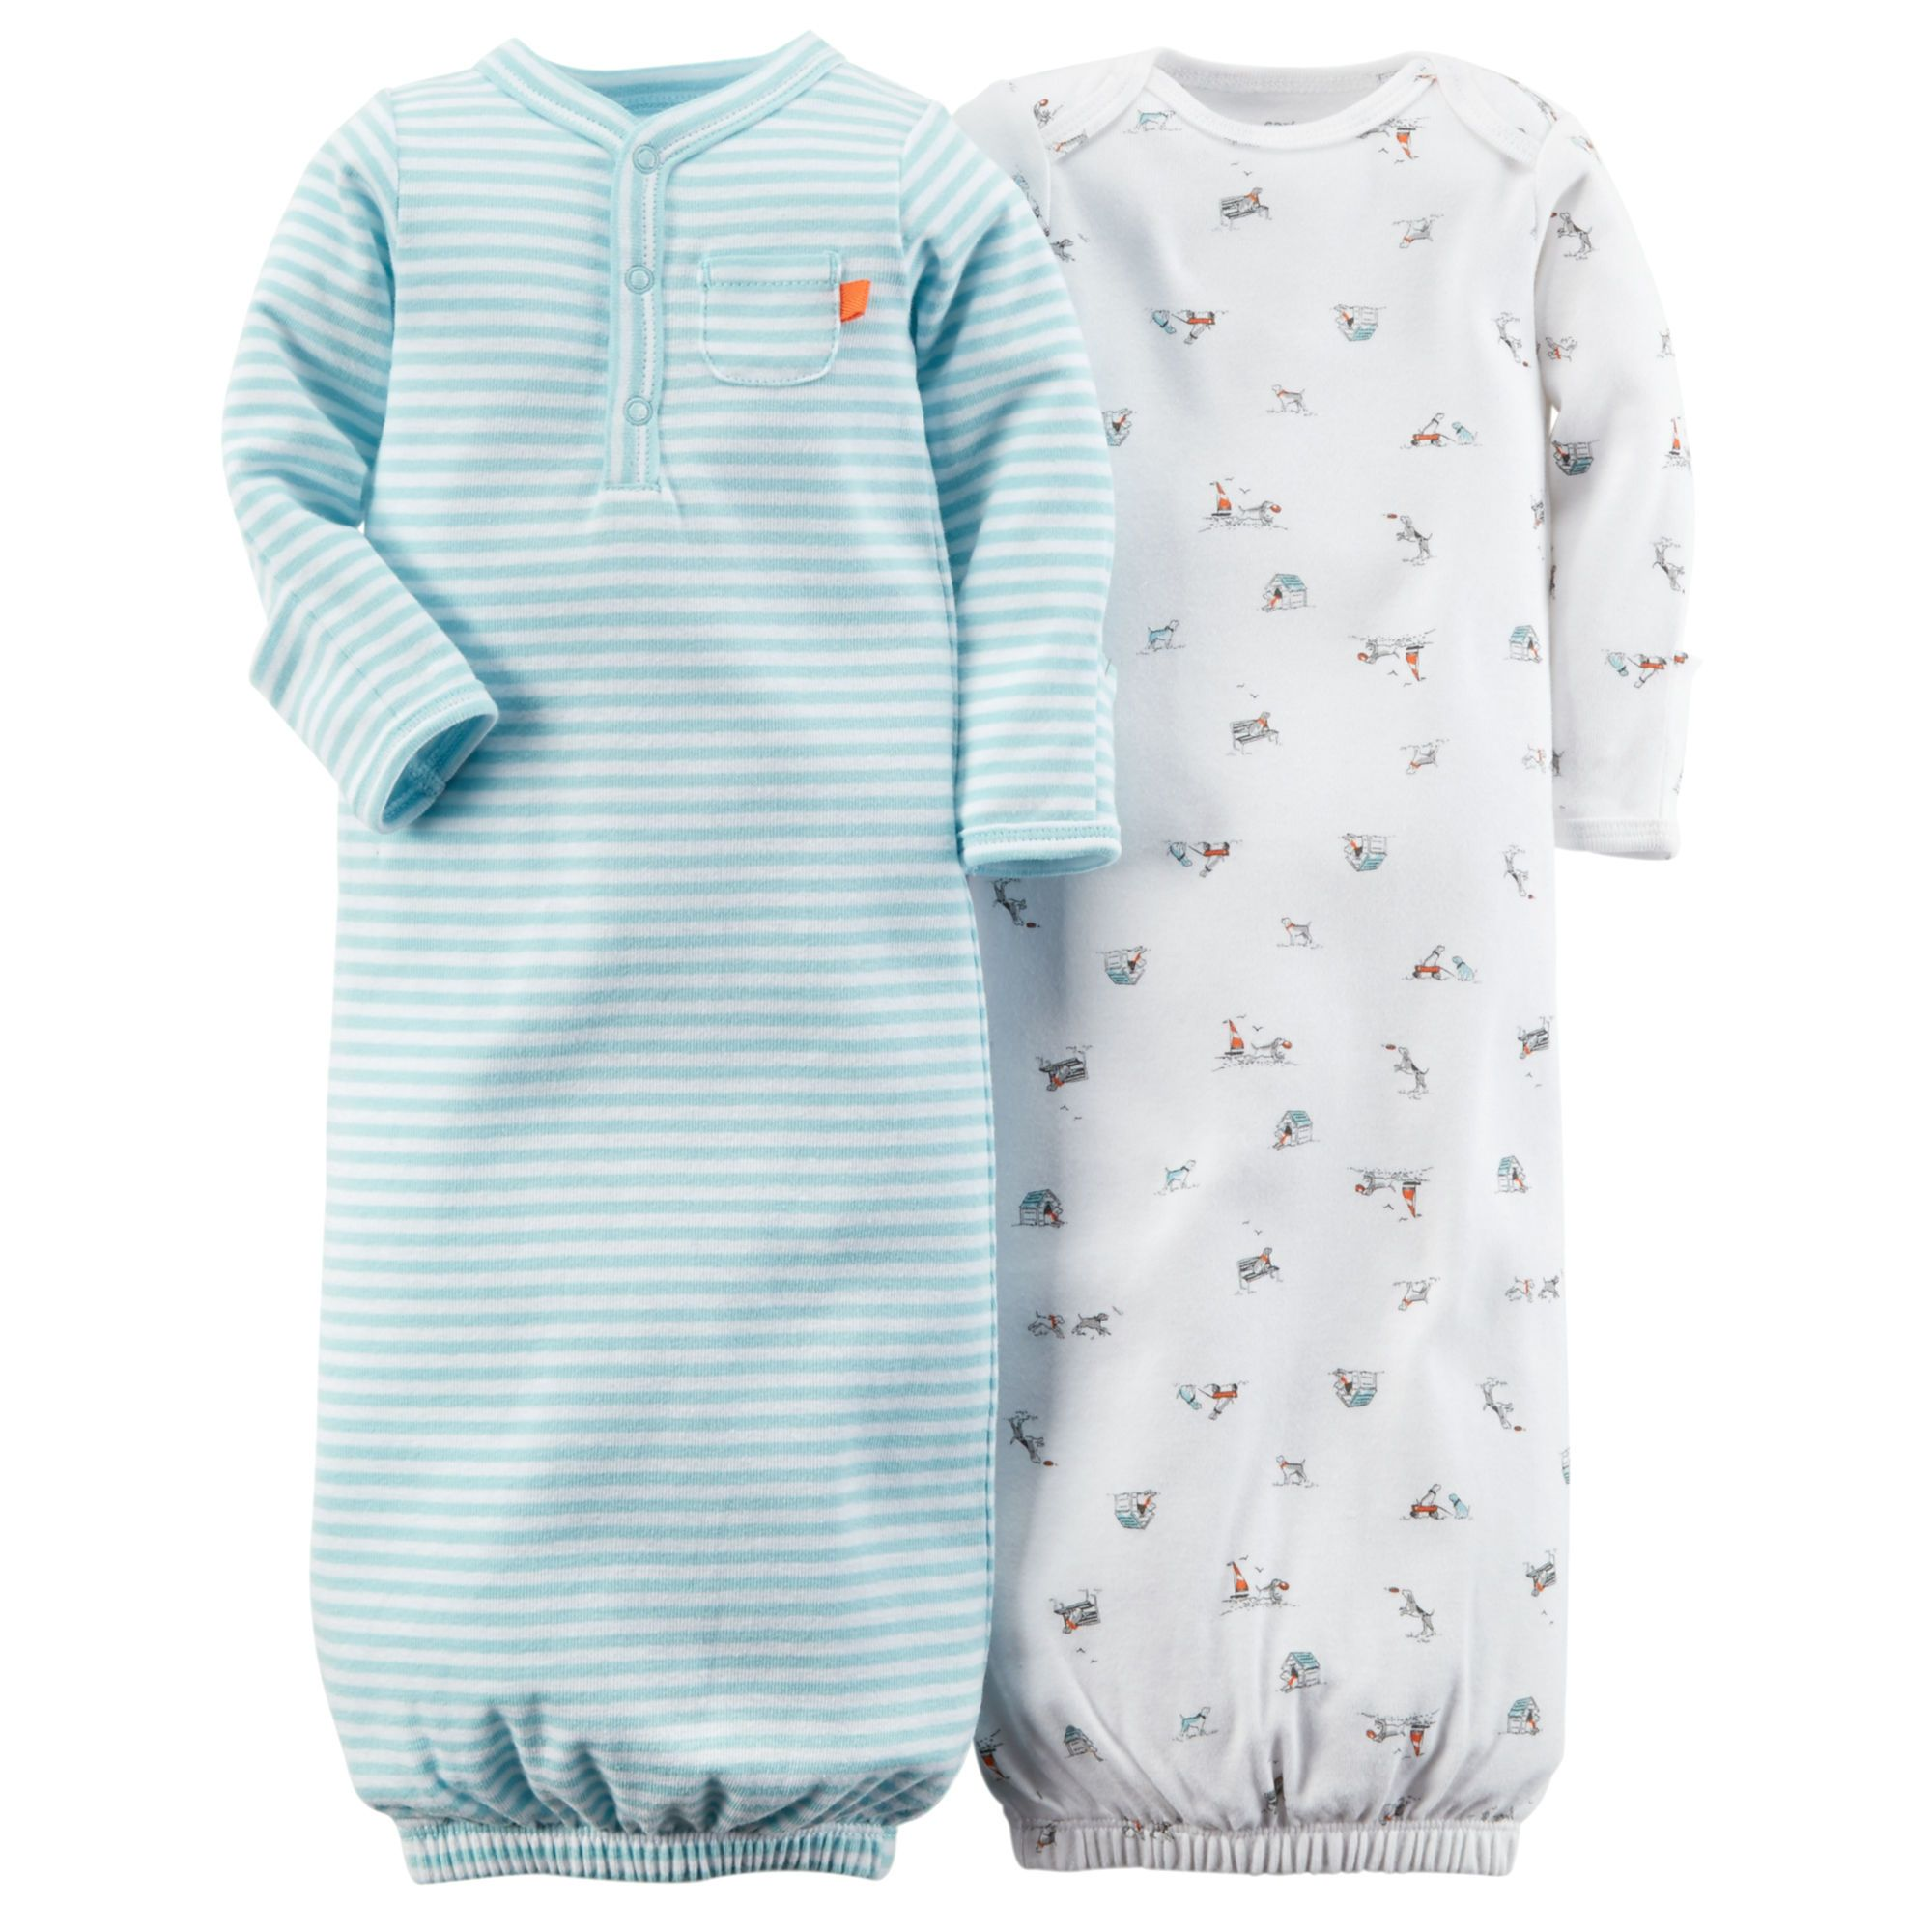 c8215dcb5 2-Pack Sleeper Gowns $12.00 | Baby & Toddler Gifts | Carters baby ...